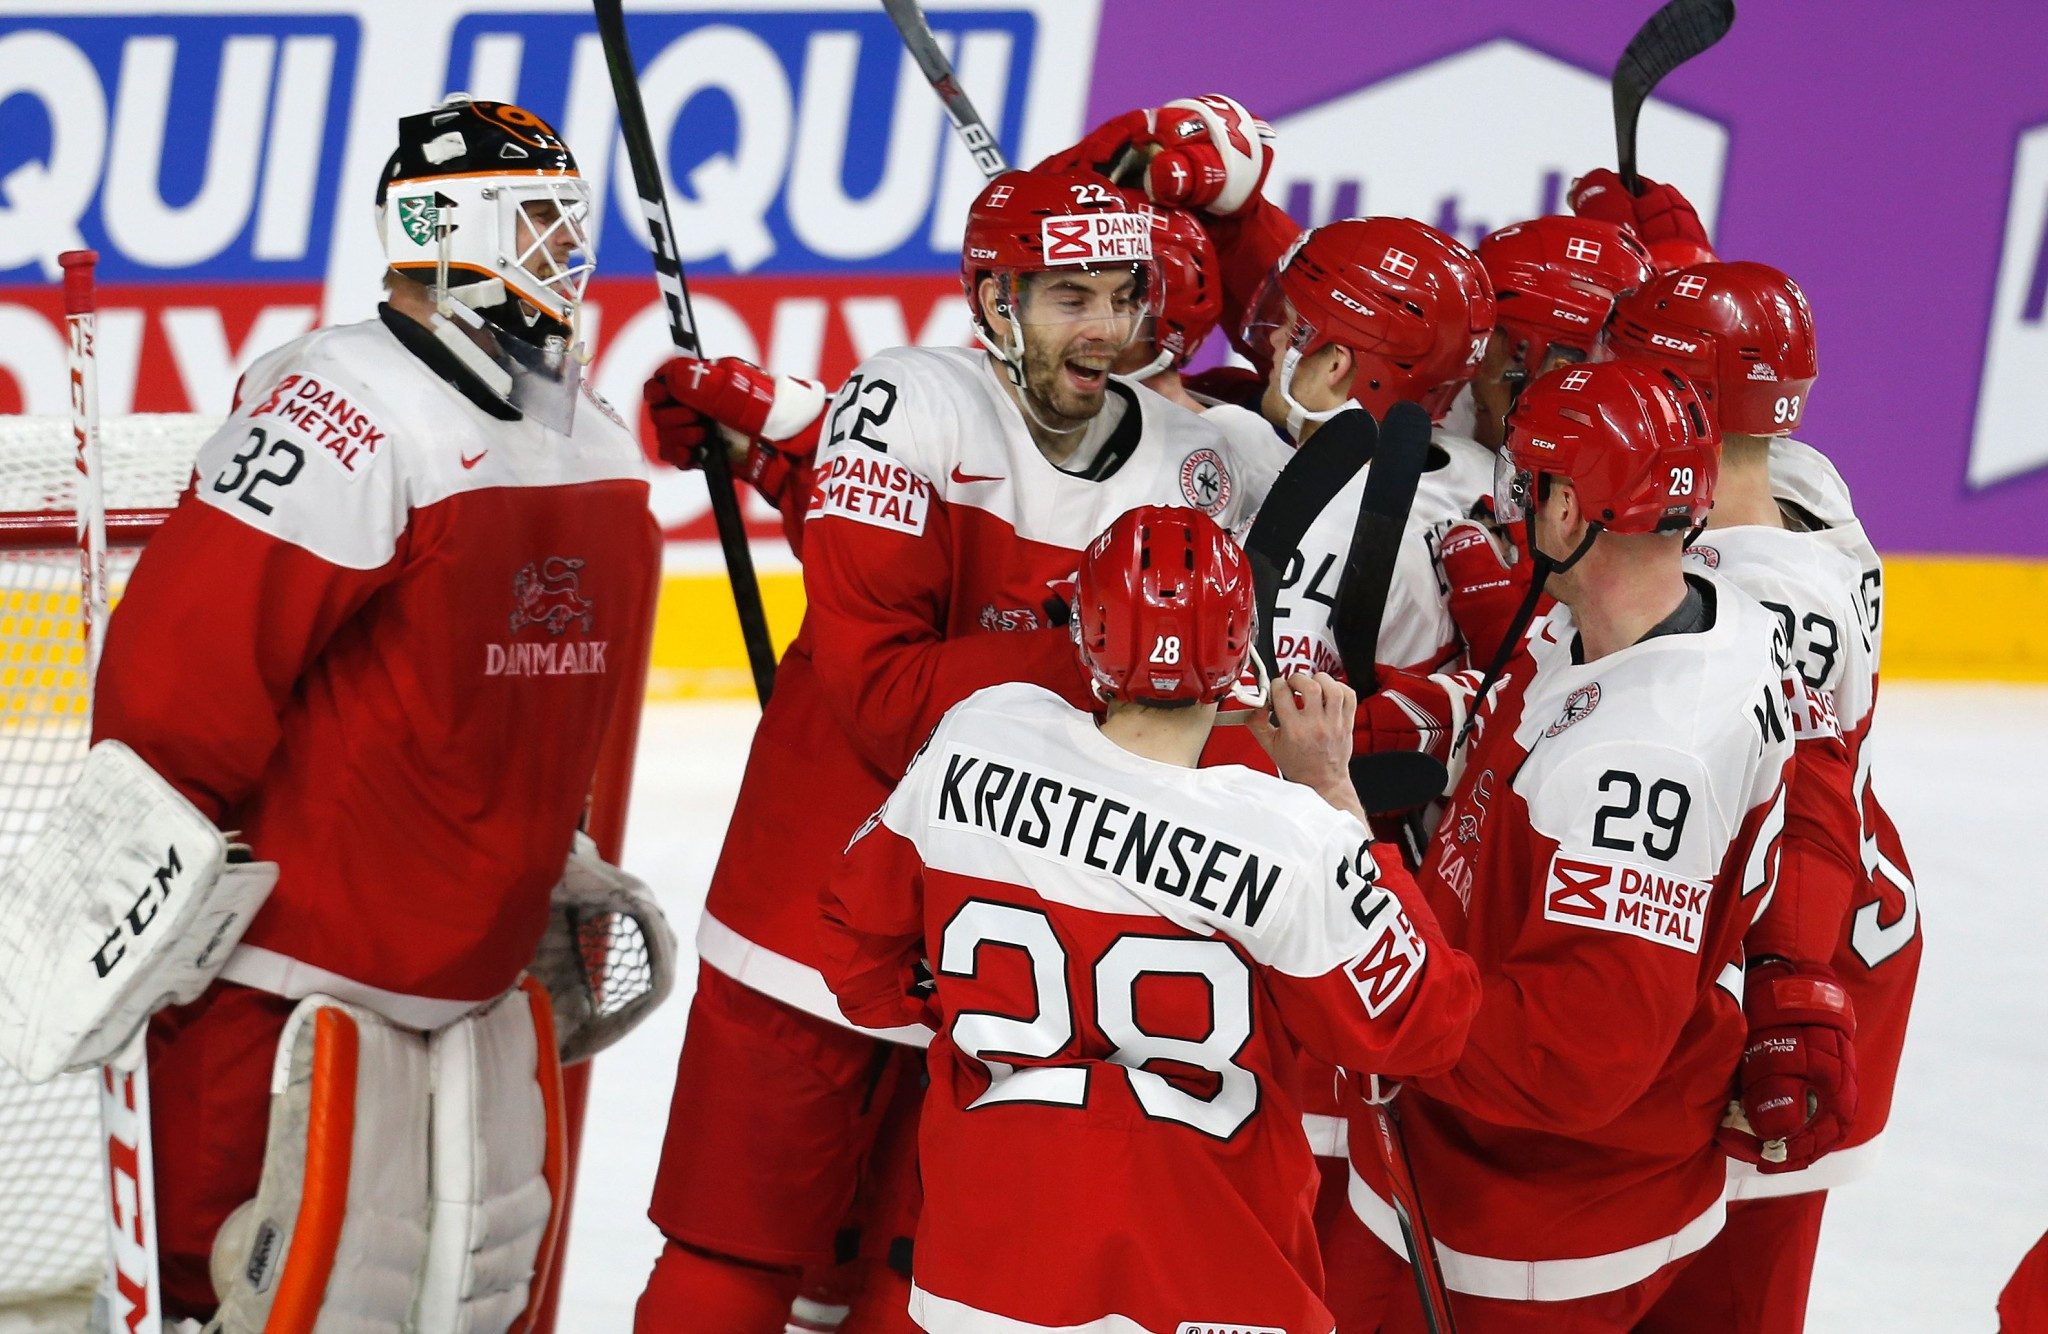 Hosts Denmark will begin the 2018 tournament against Germany ©Getty Images